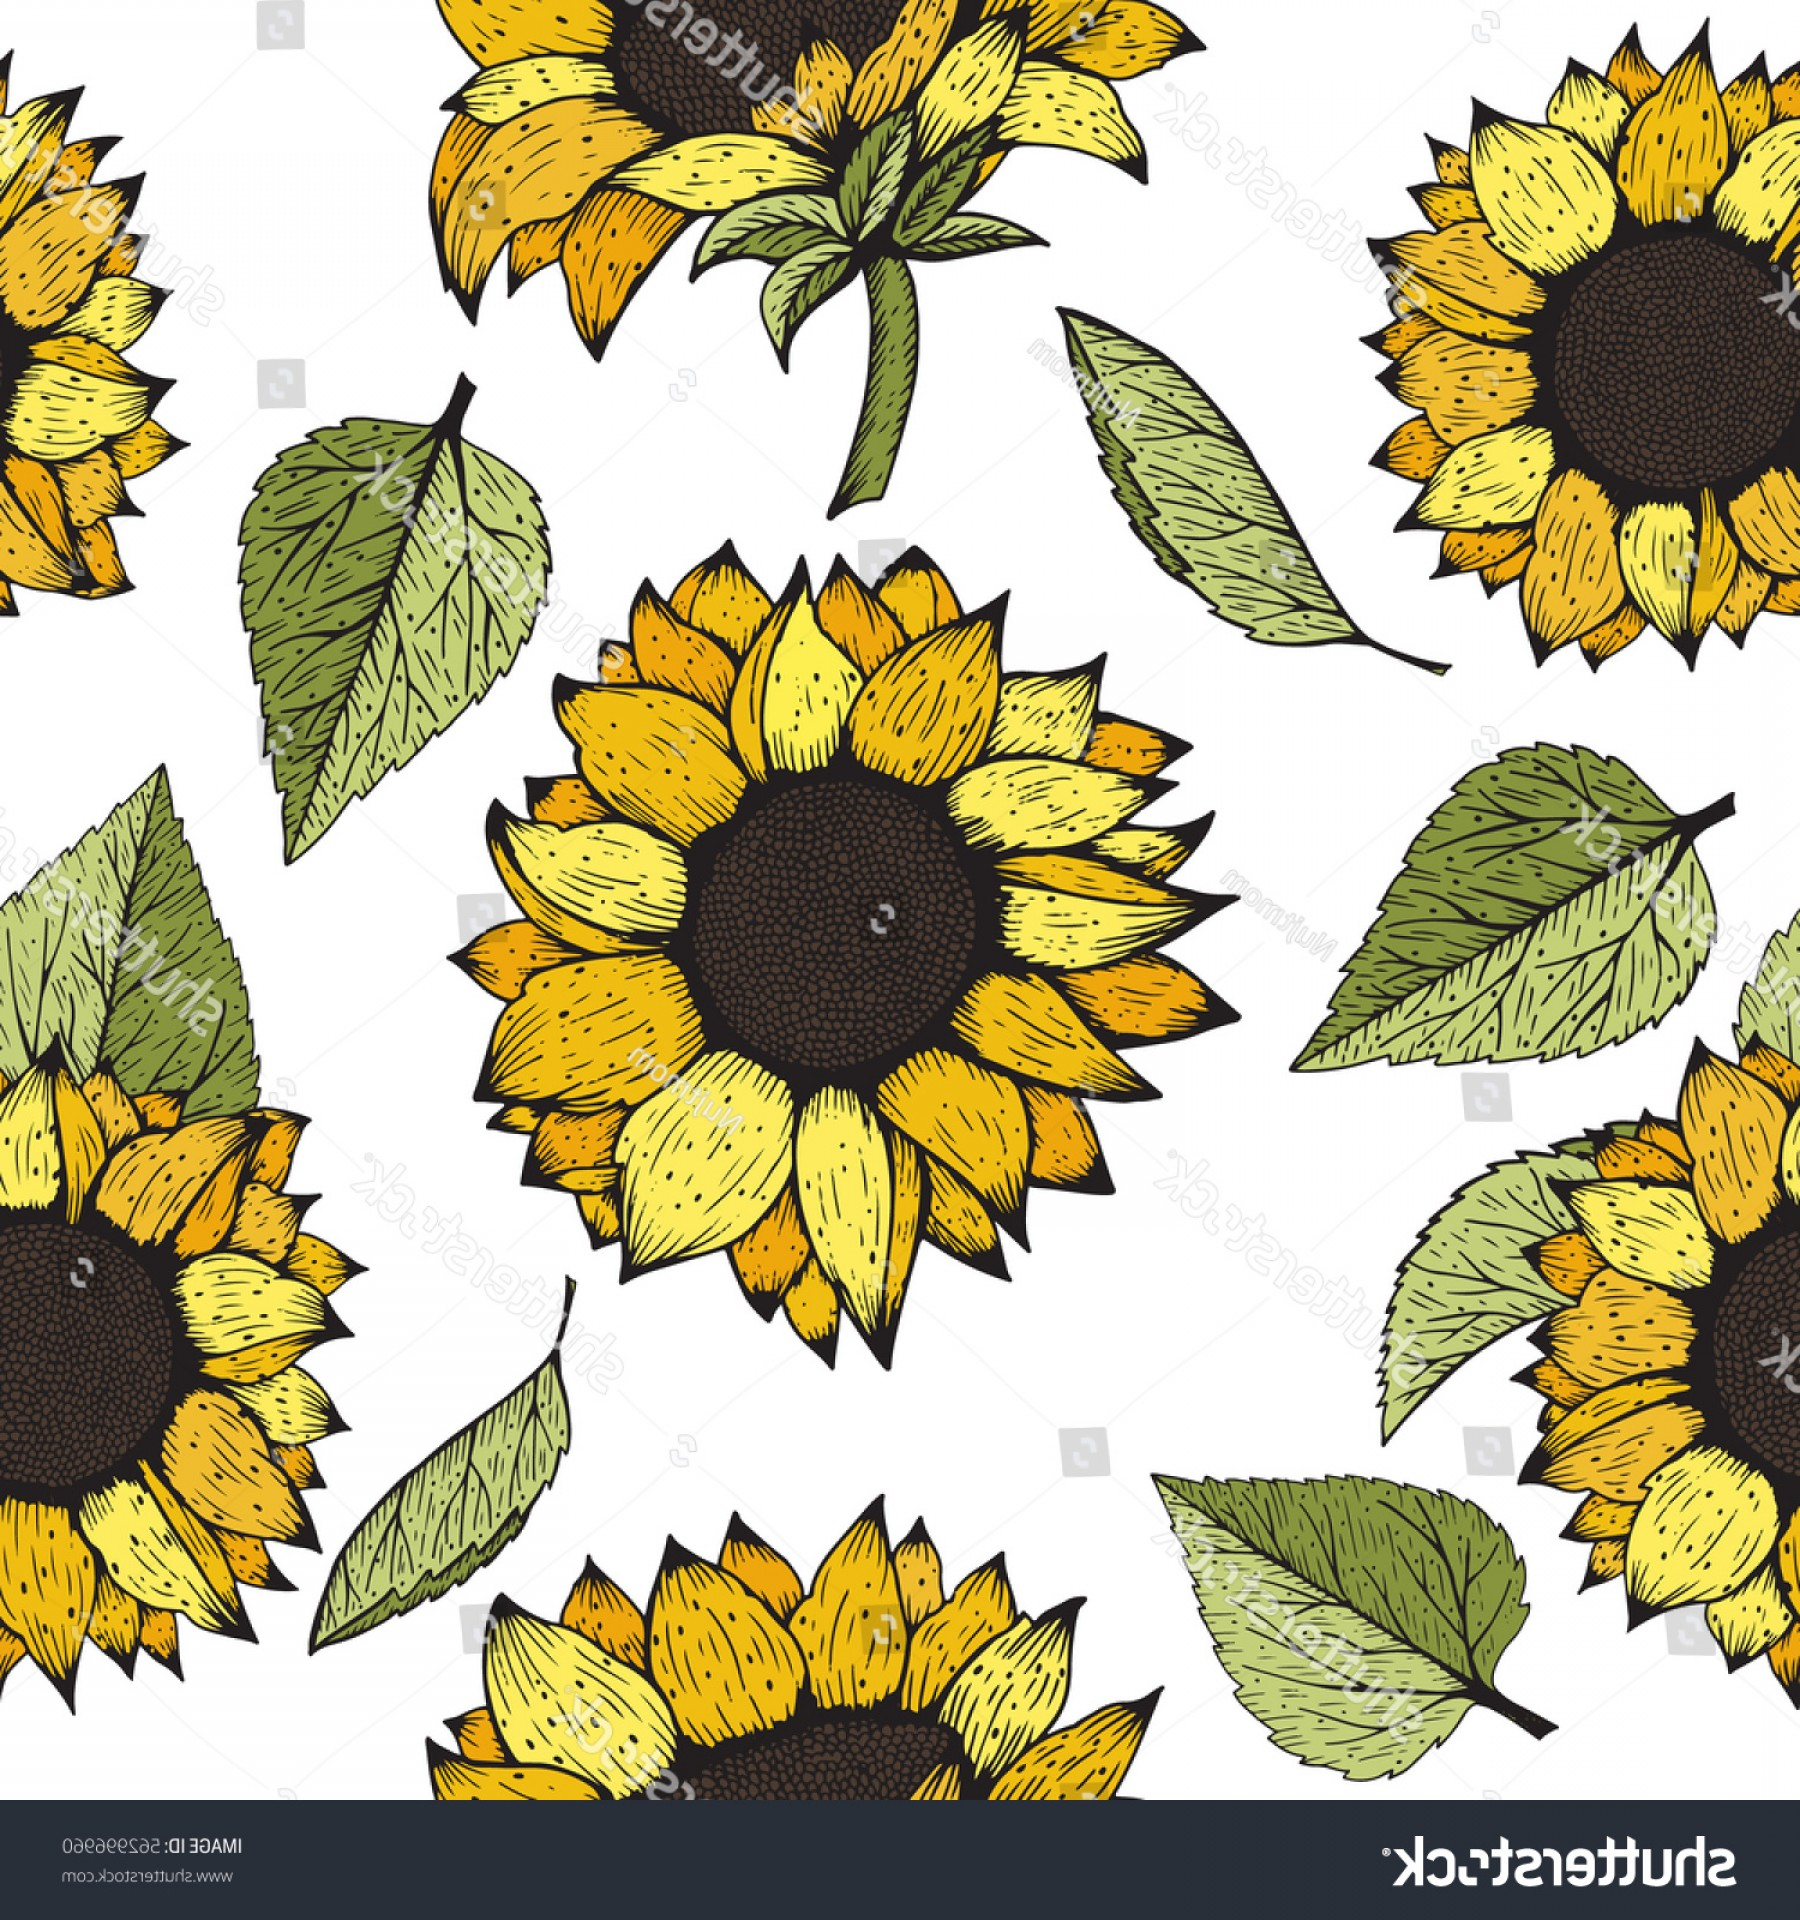 Sunflower Vector Pattern: Sunflower Vector Hand Drawn Sunflowers Seamless